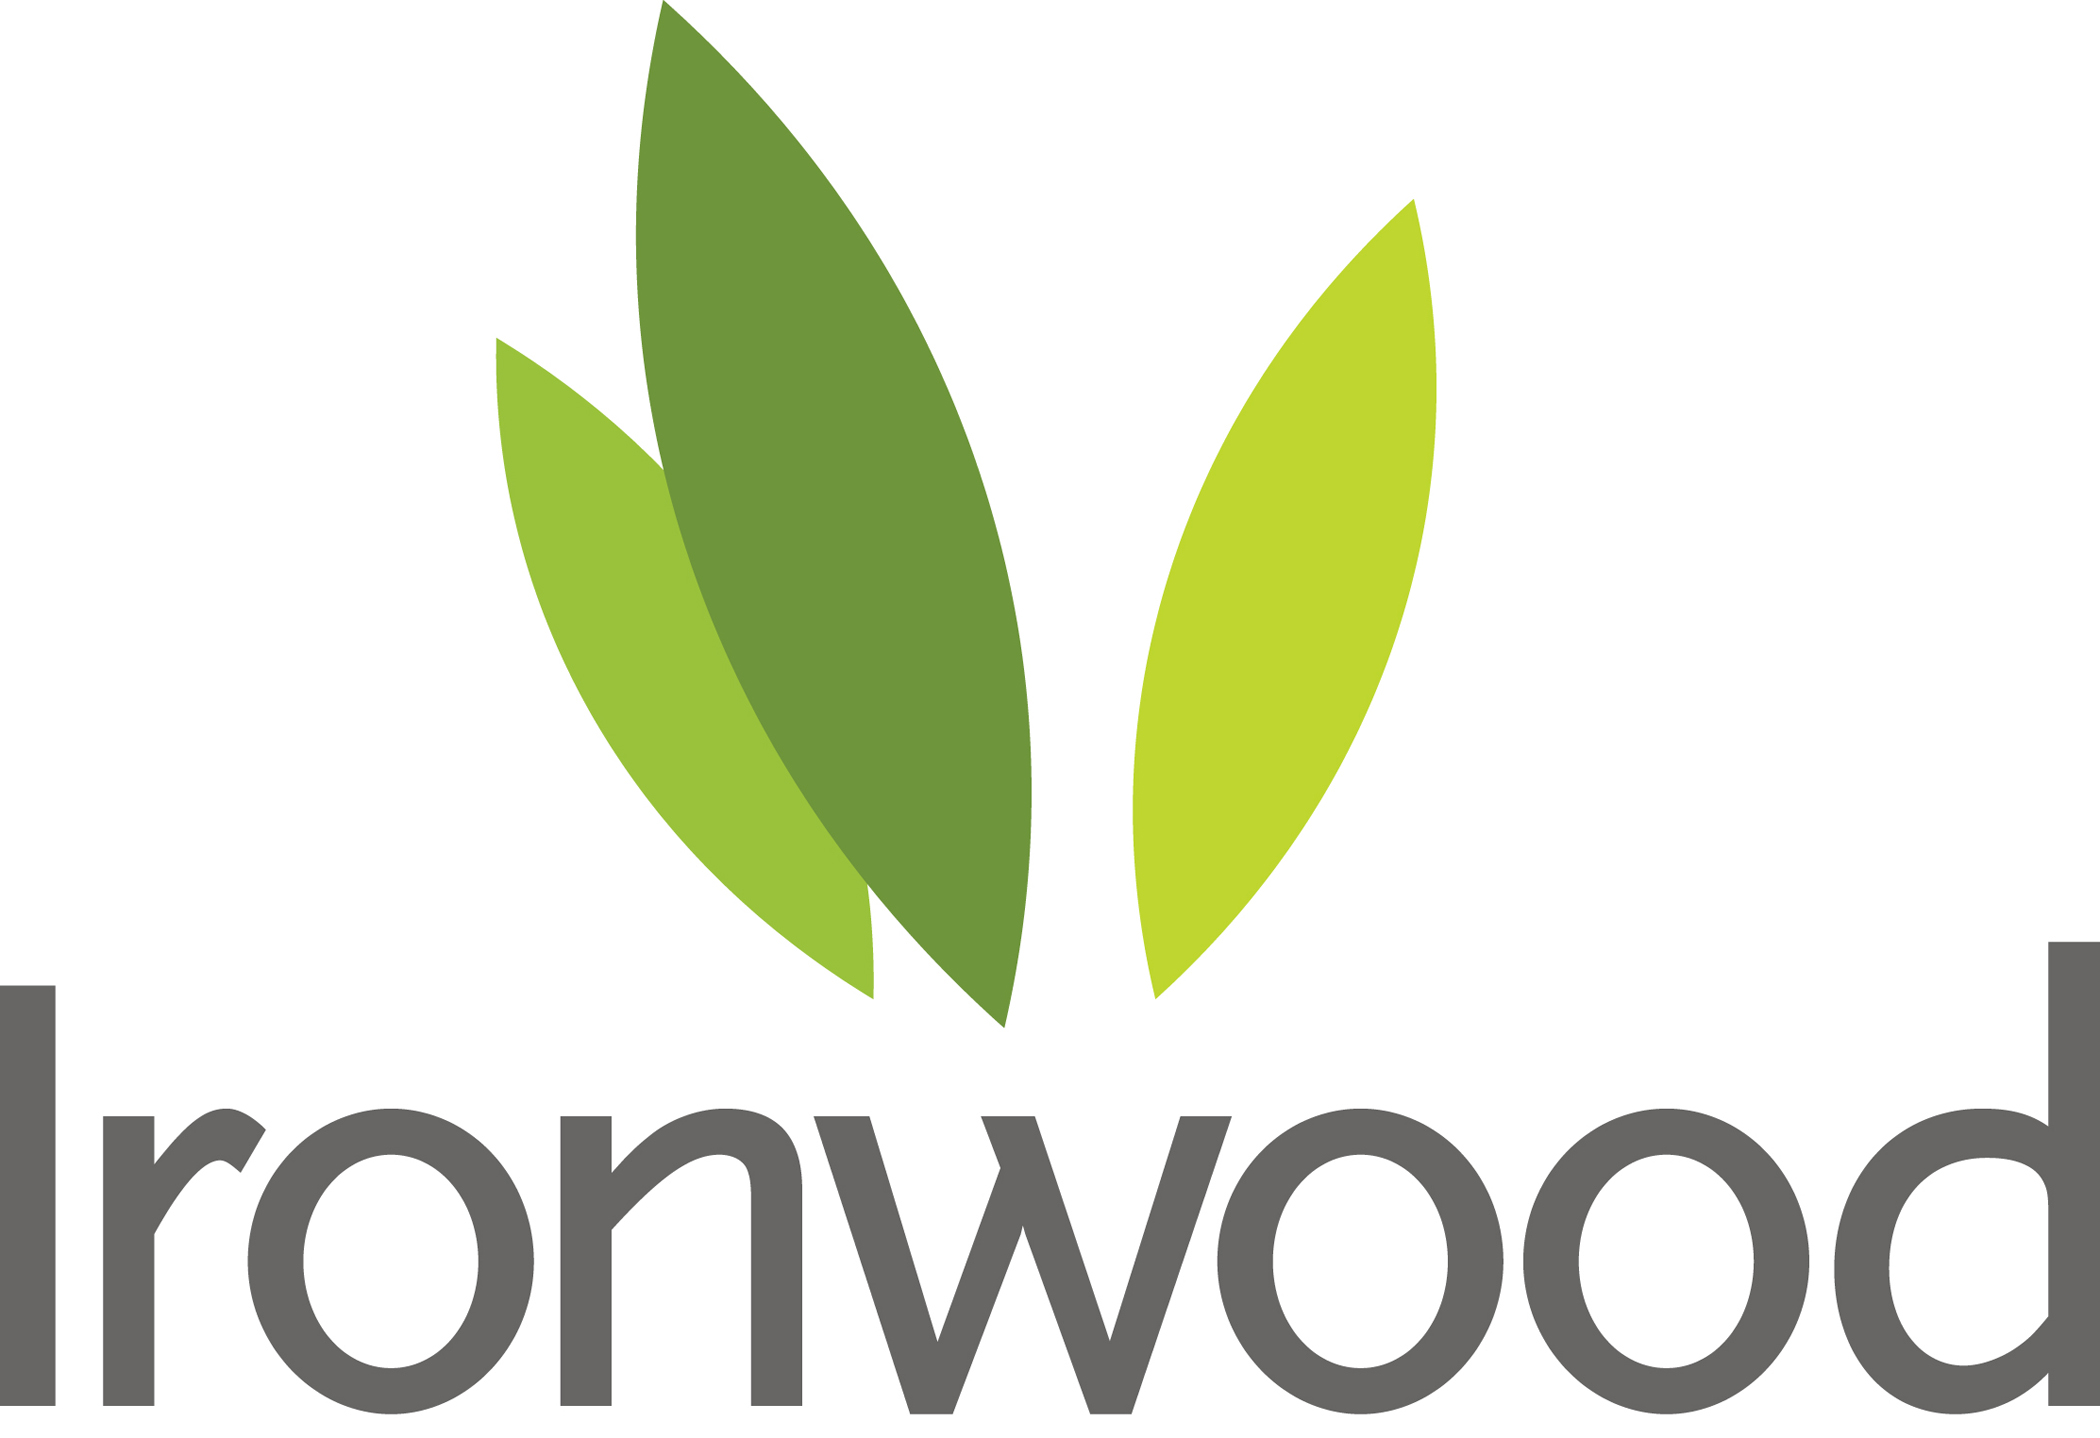 Ironwood Pharma Logo - JPEG